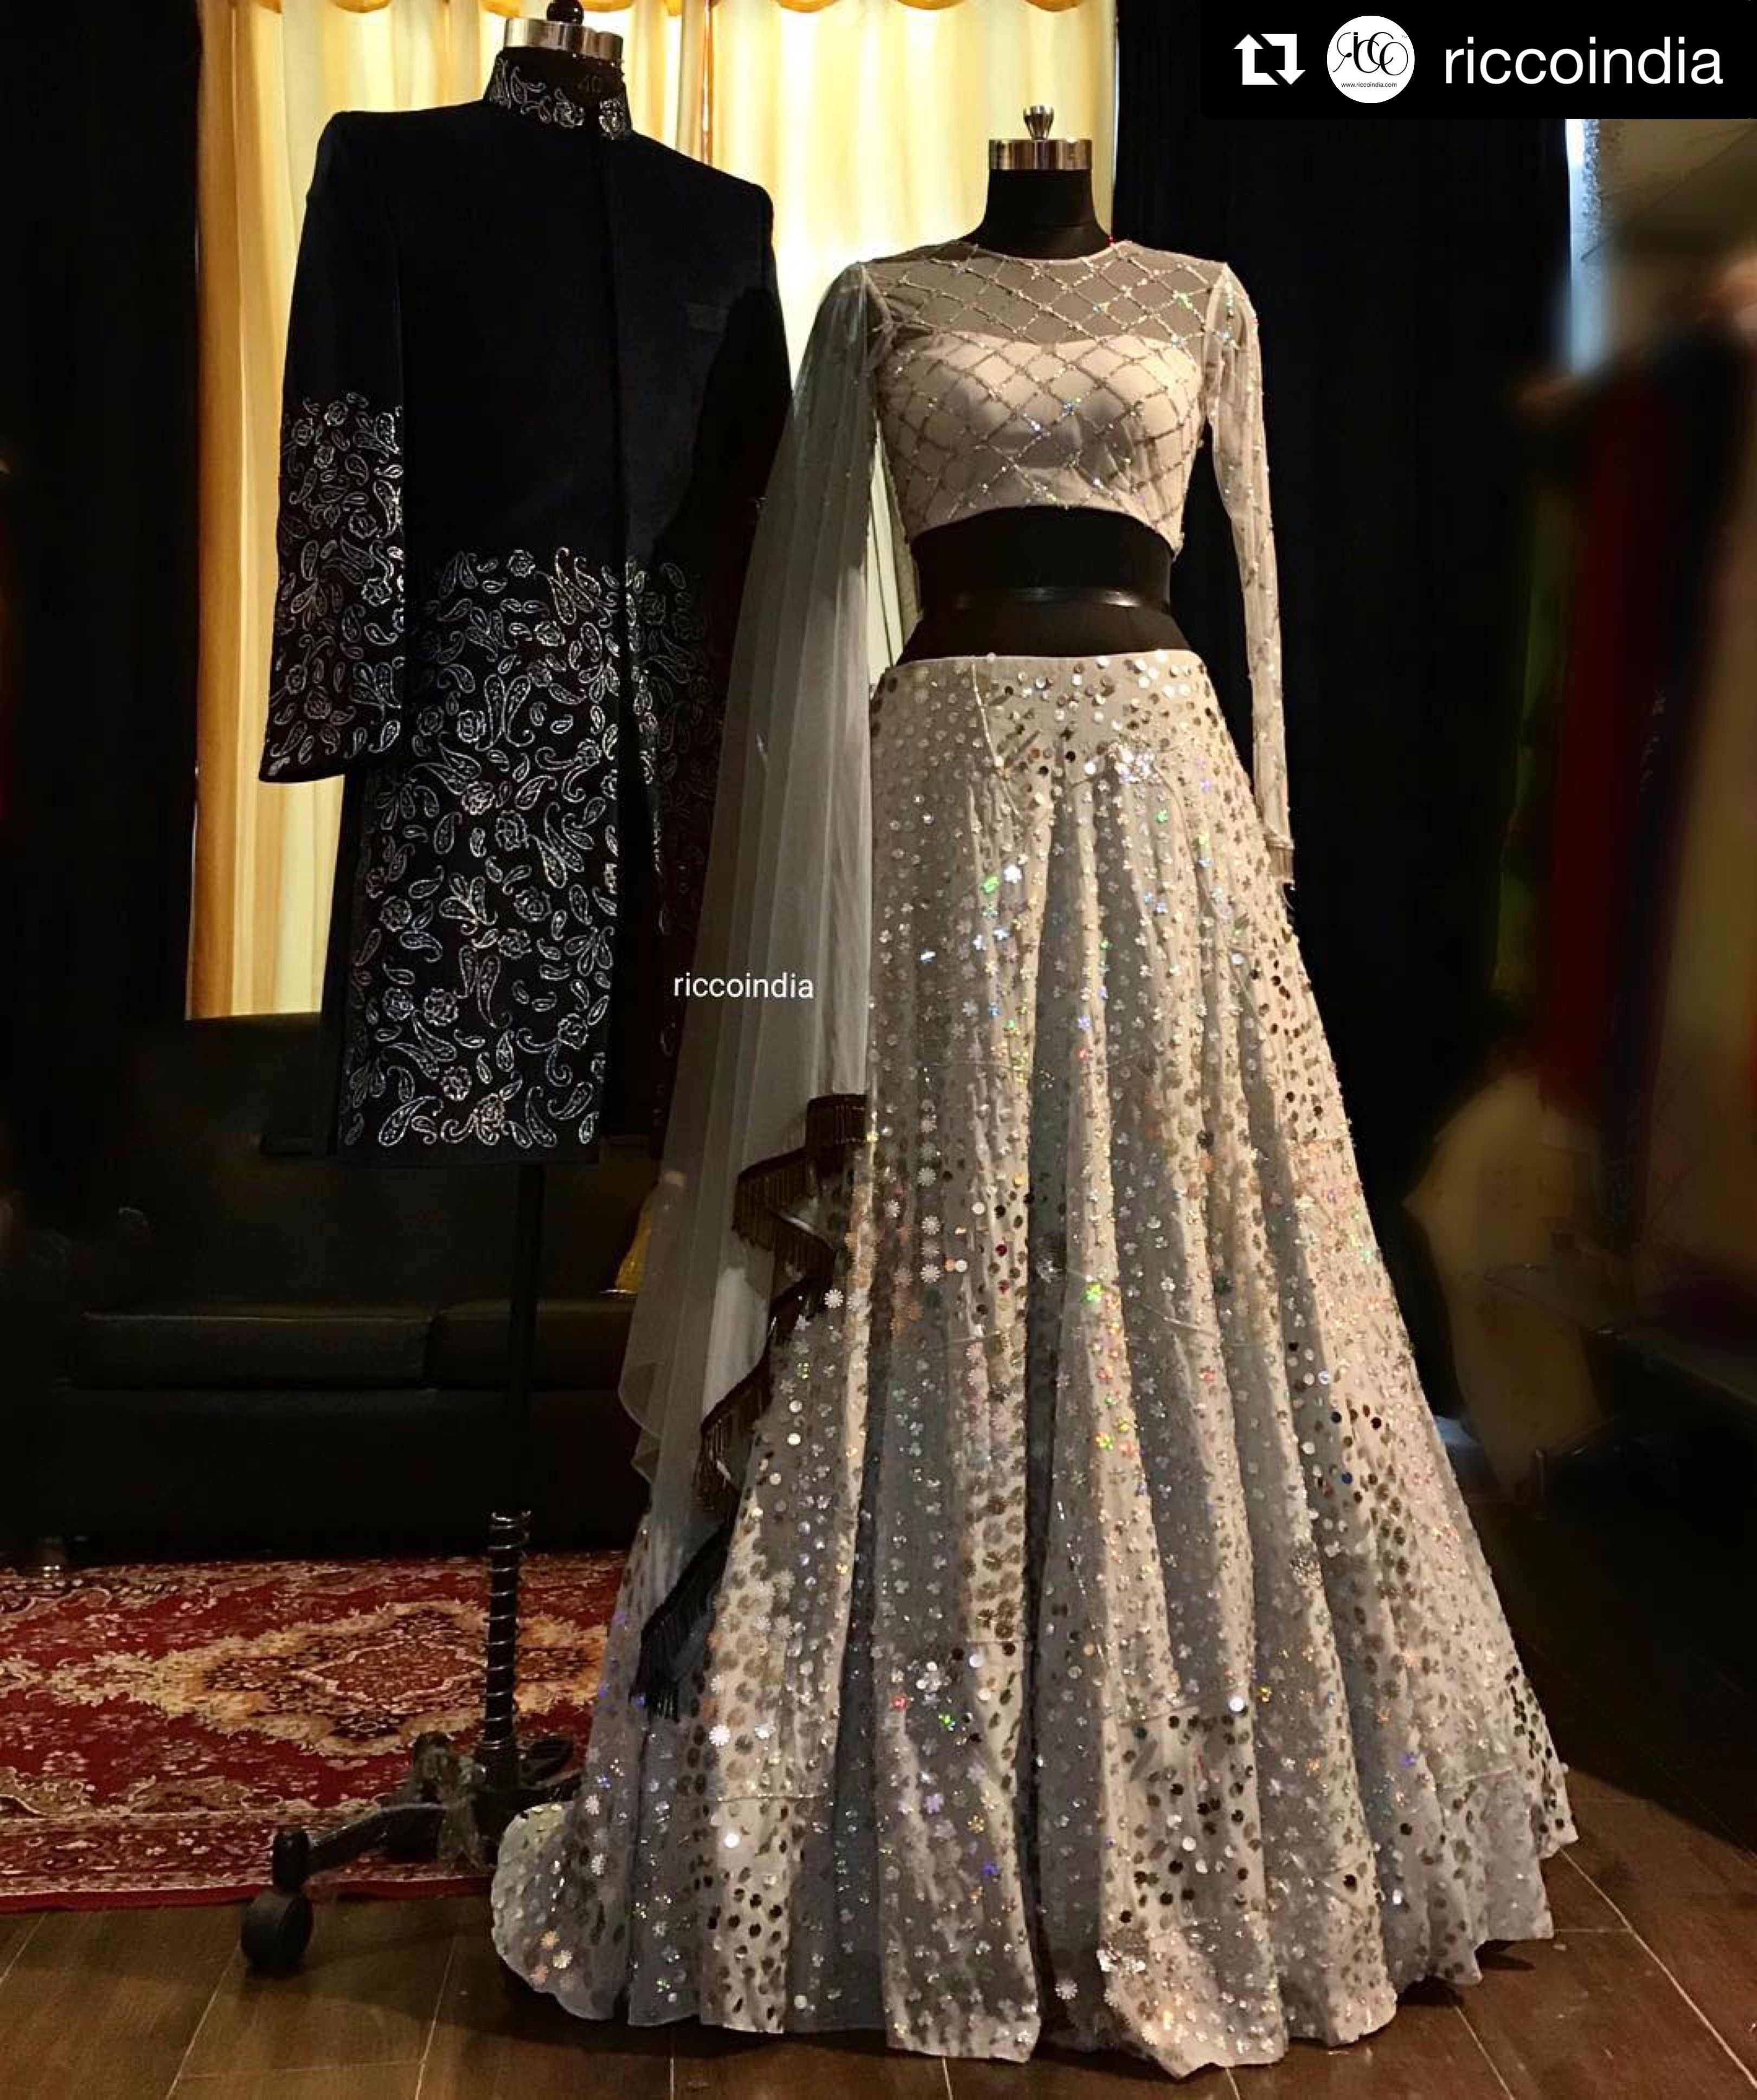 387d5ce7dc5 Silver Lehenga with sequin work and criss cross embroidery blouse for the  Bride. Blue velvet textured sherwani for the groom